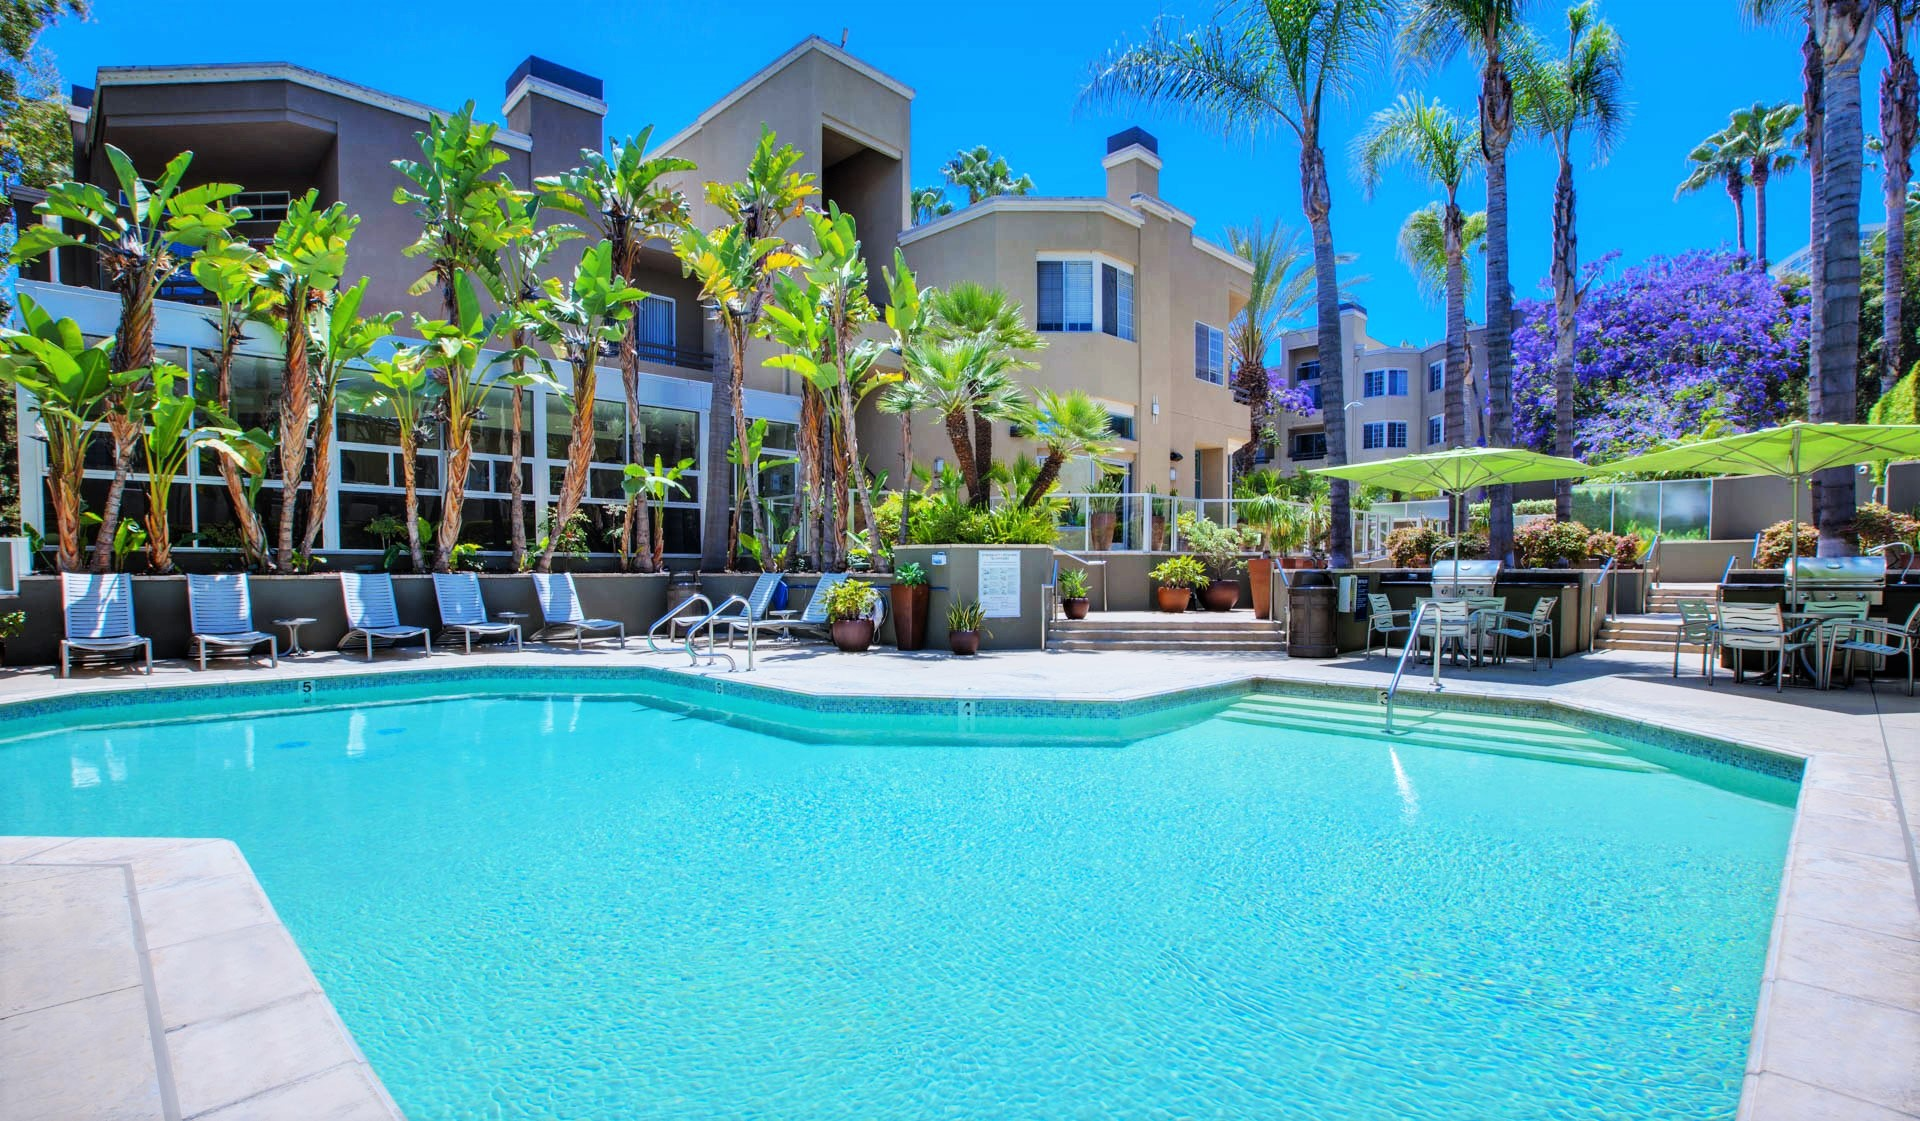 Hillcreste Apartments in Century City, CA - Resort-Style Outdoor Pool